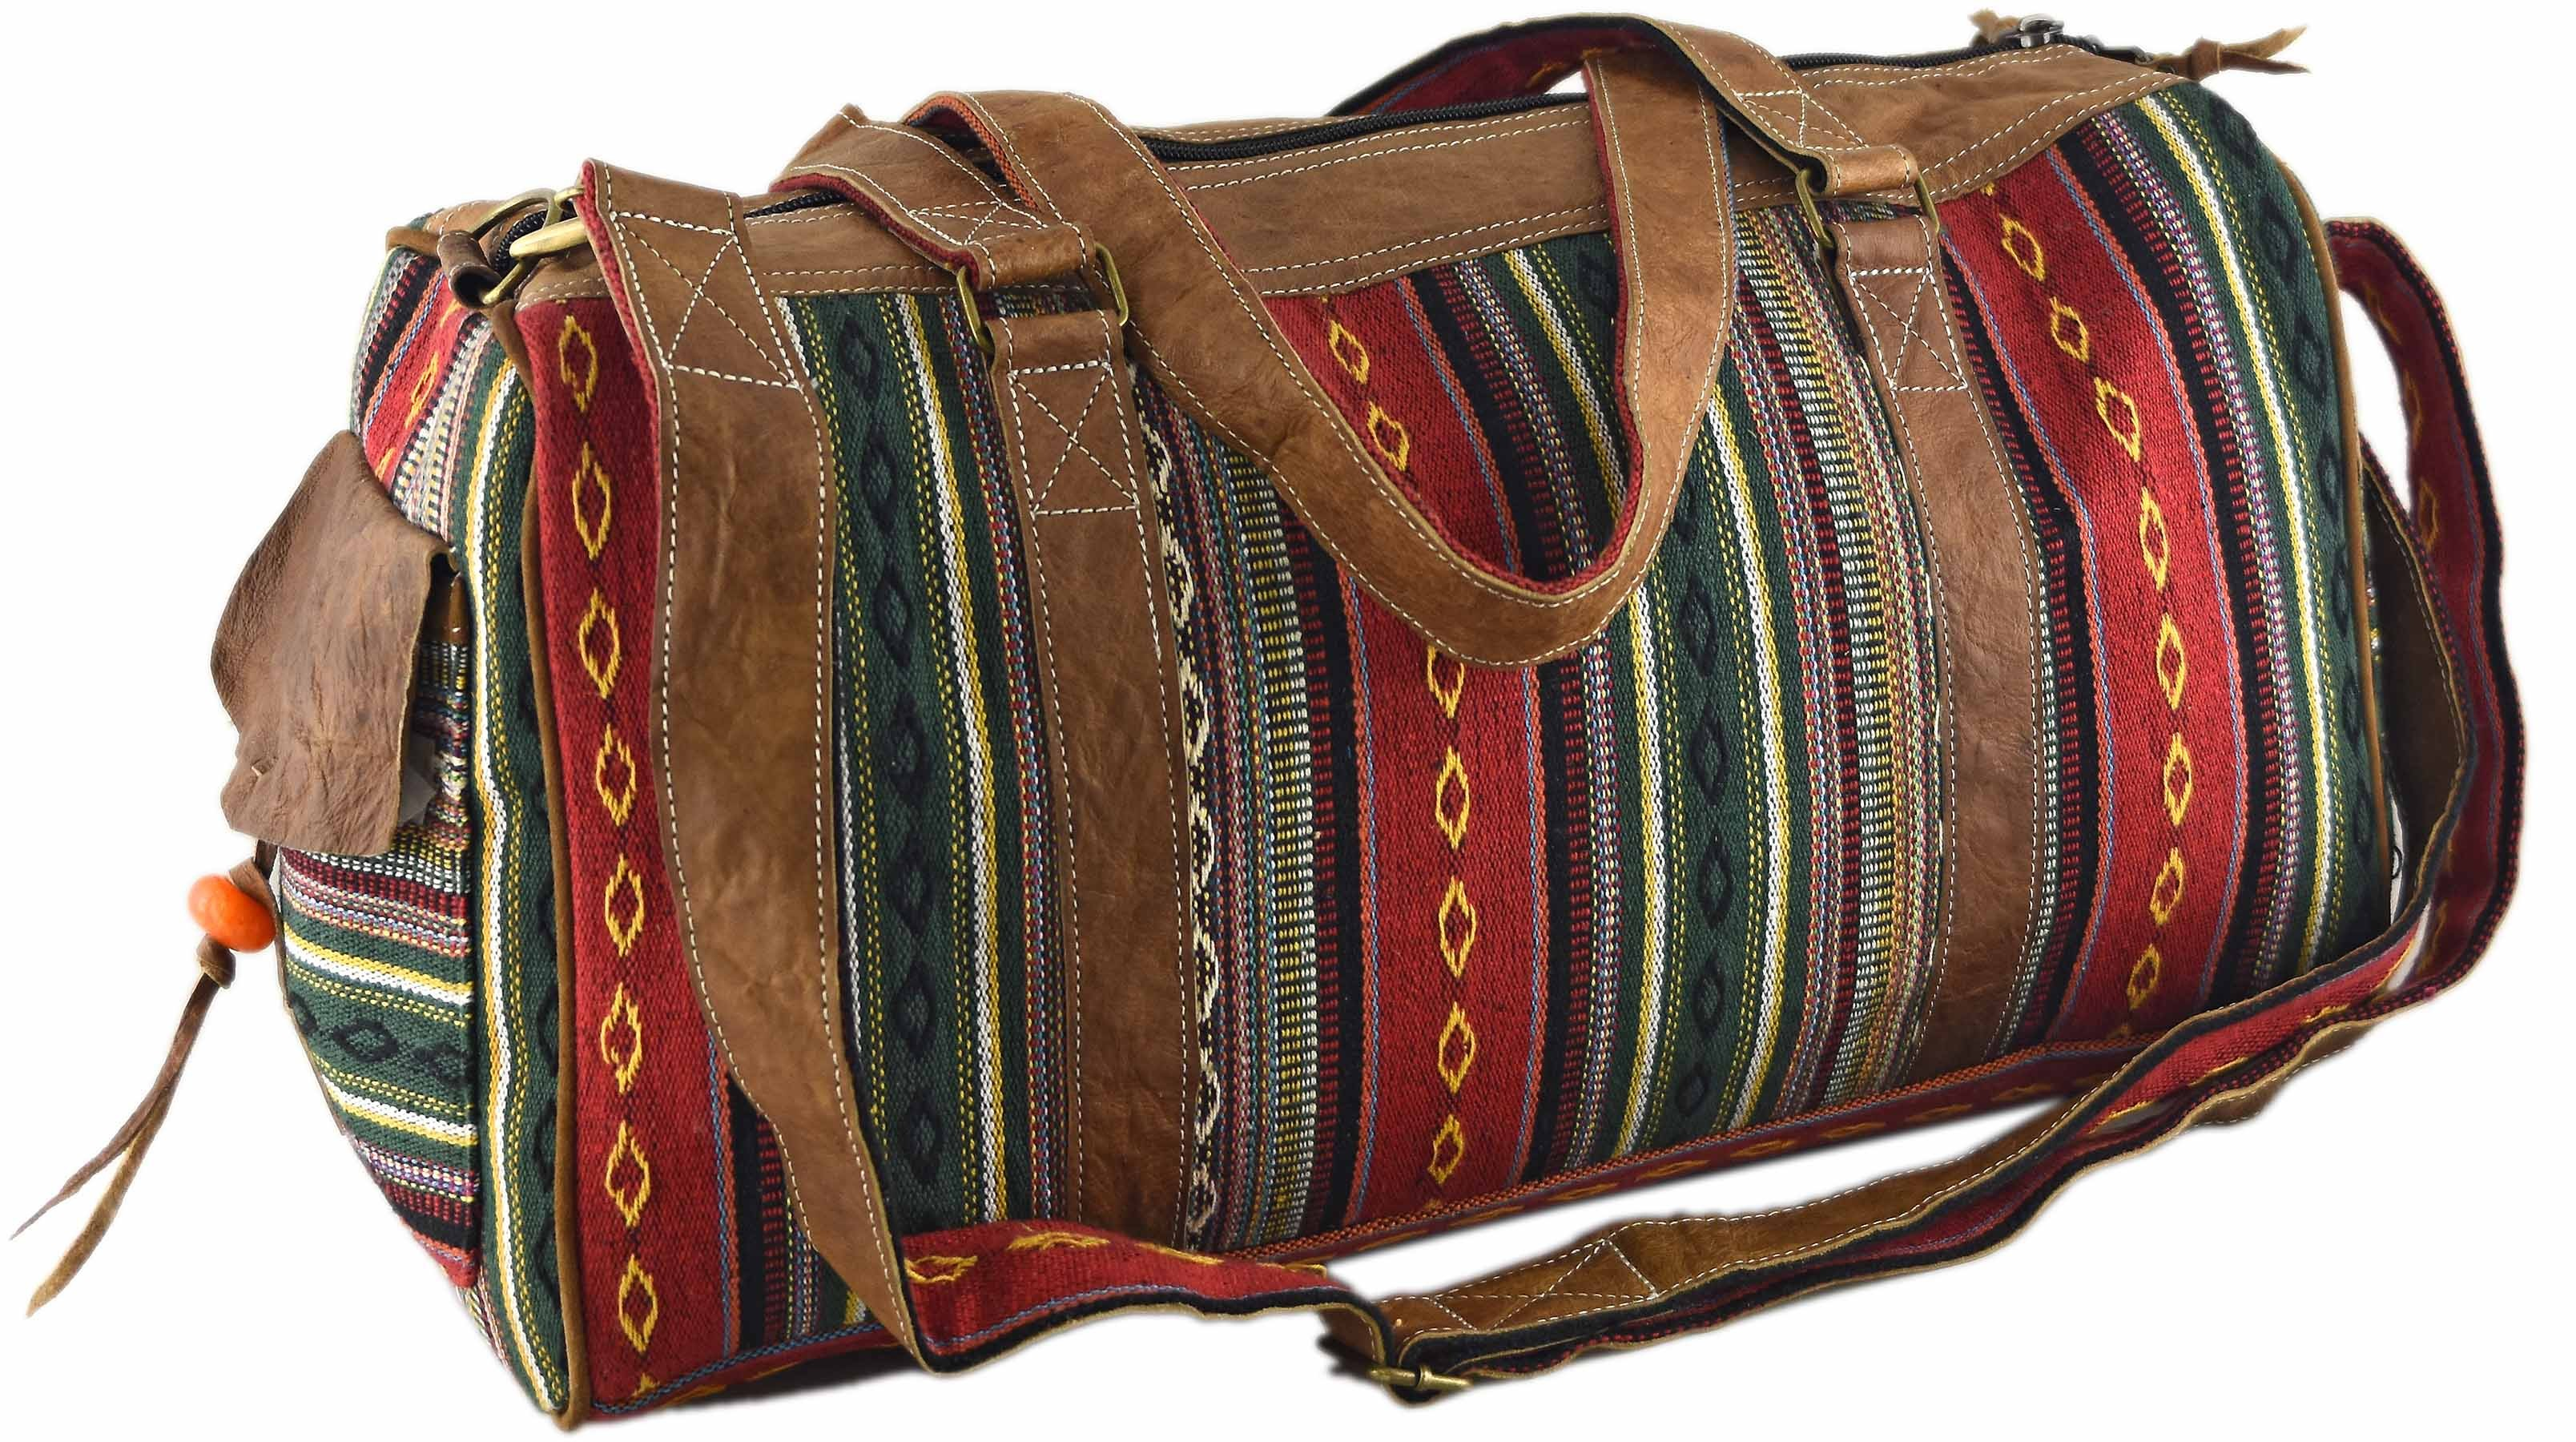 Wanderlust Watermelon Weekender Travel Bag Travel Bags